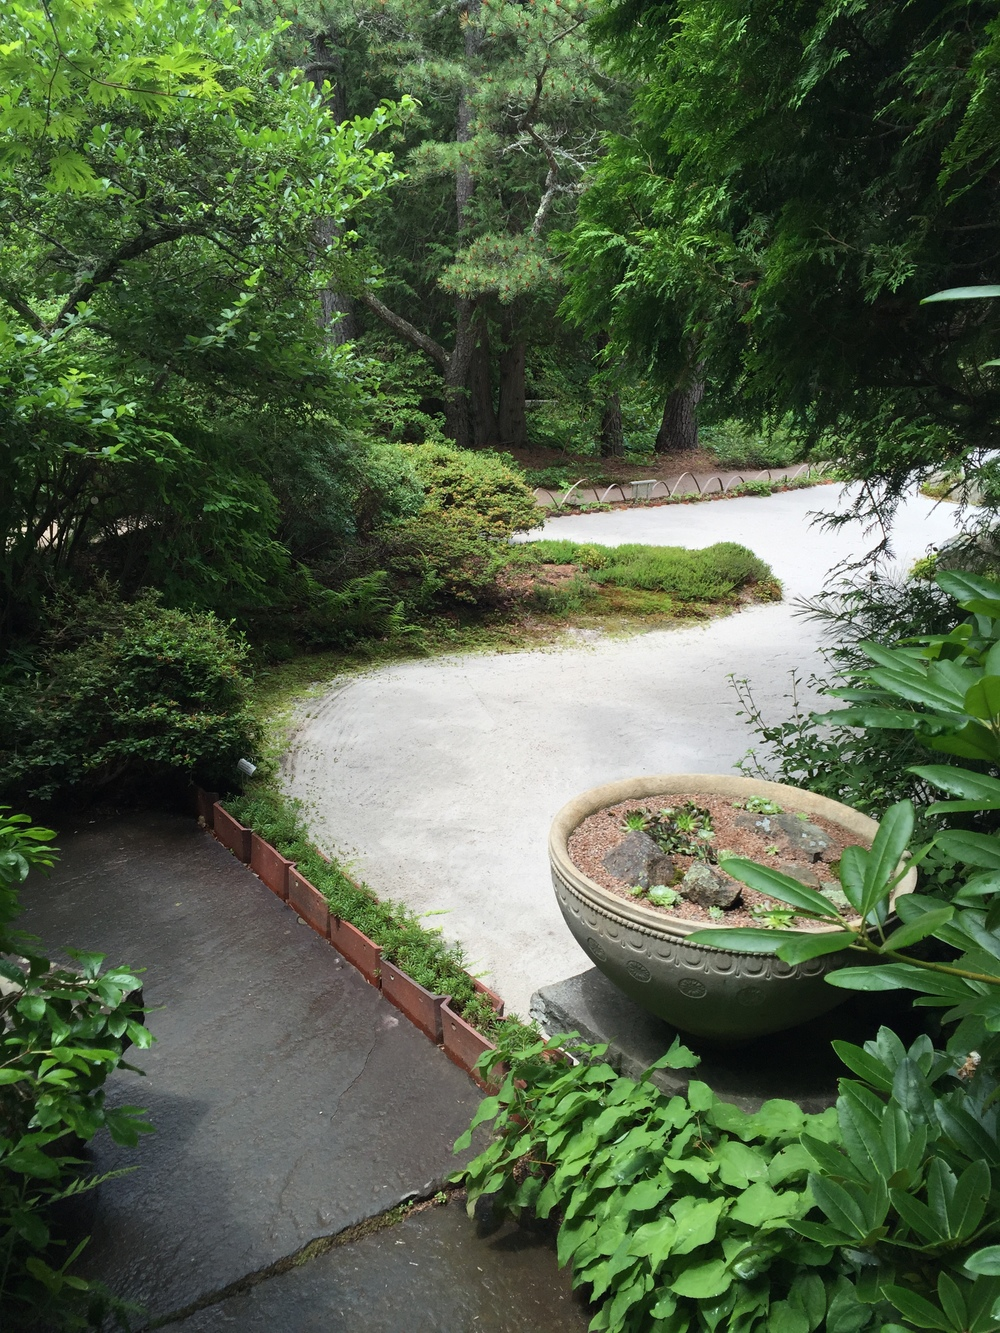 The edge of the stone garden at the Asticou Azalea Garden on MDI.